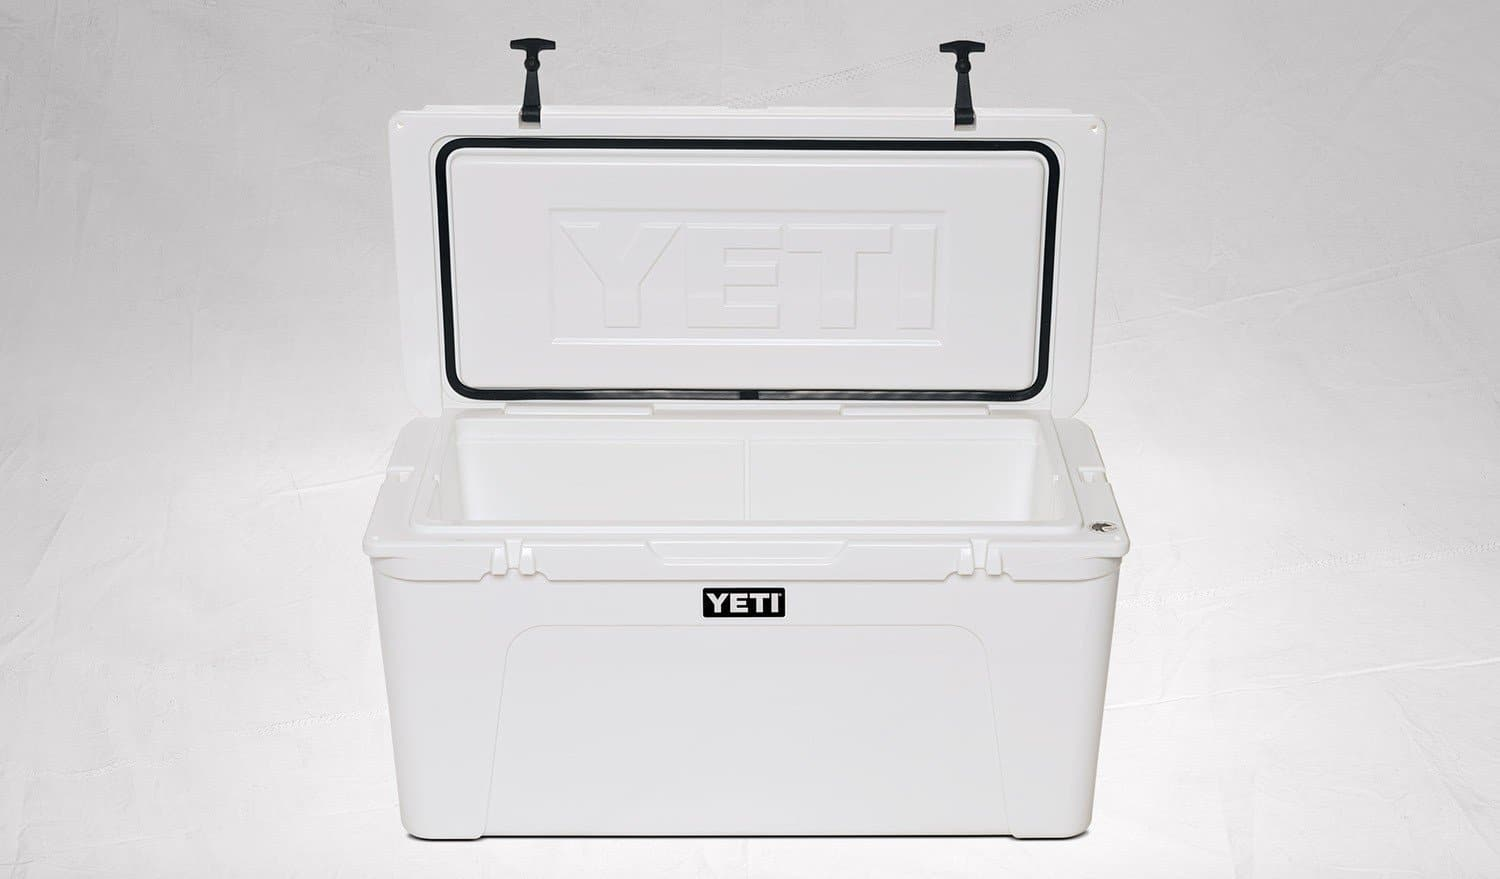 YETI Tundra 110 Cooler White open